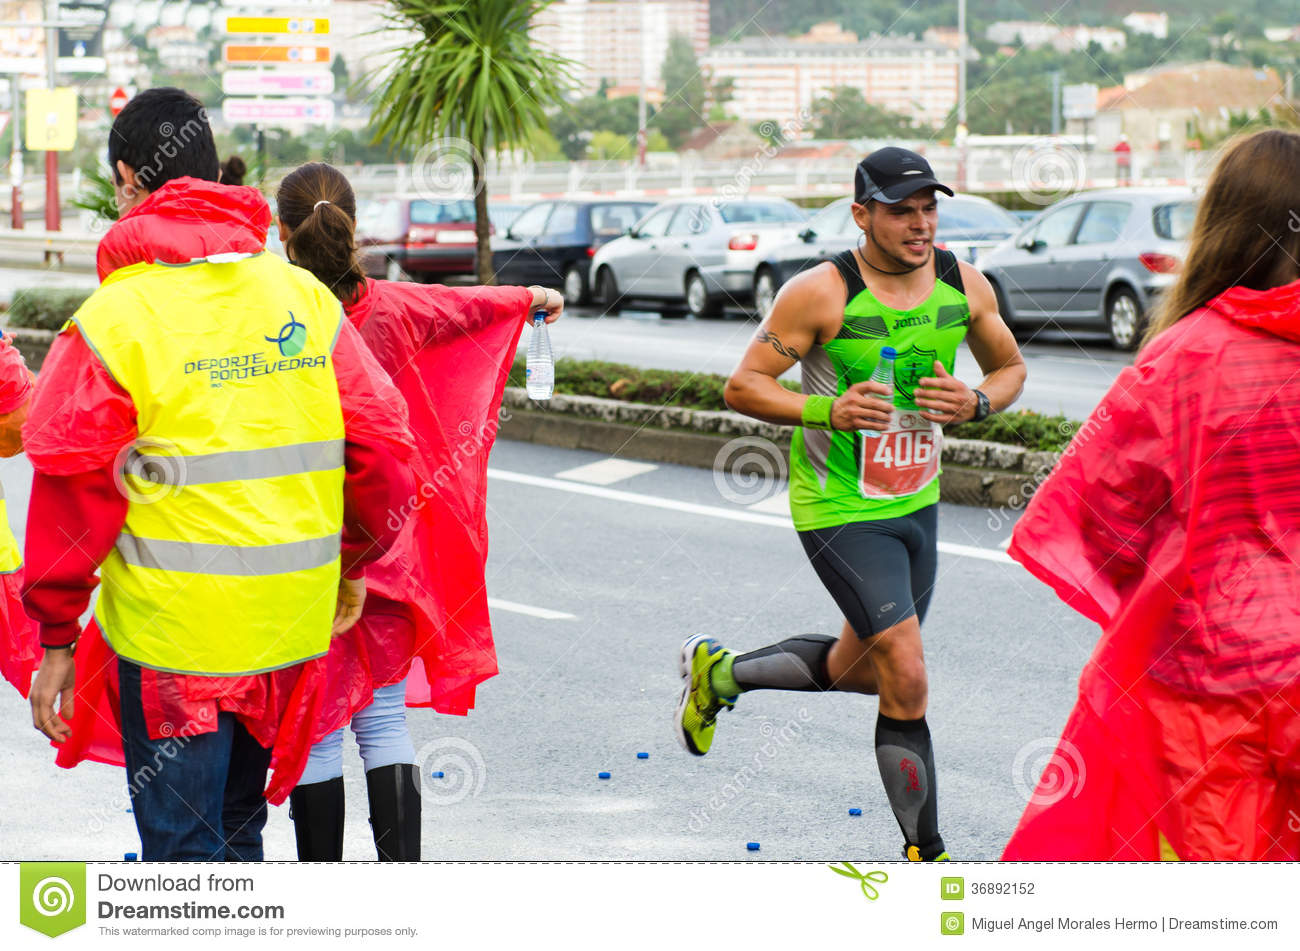 Download Maratona urbana fotografia editoriale. Immagine di atletico - 36892152